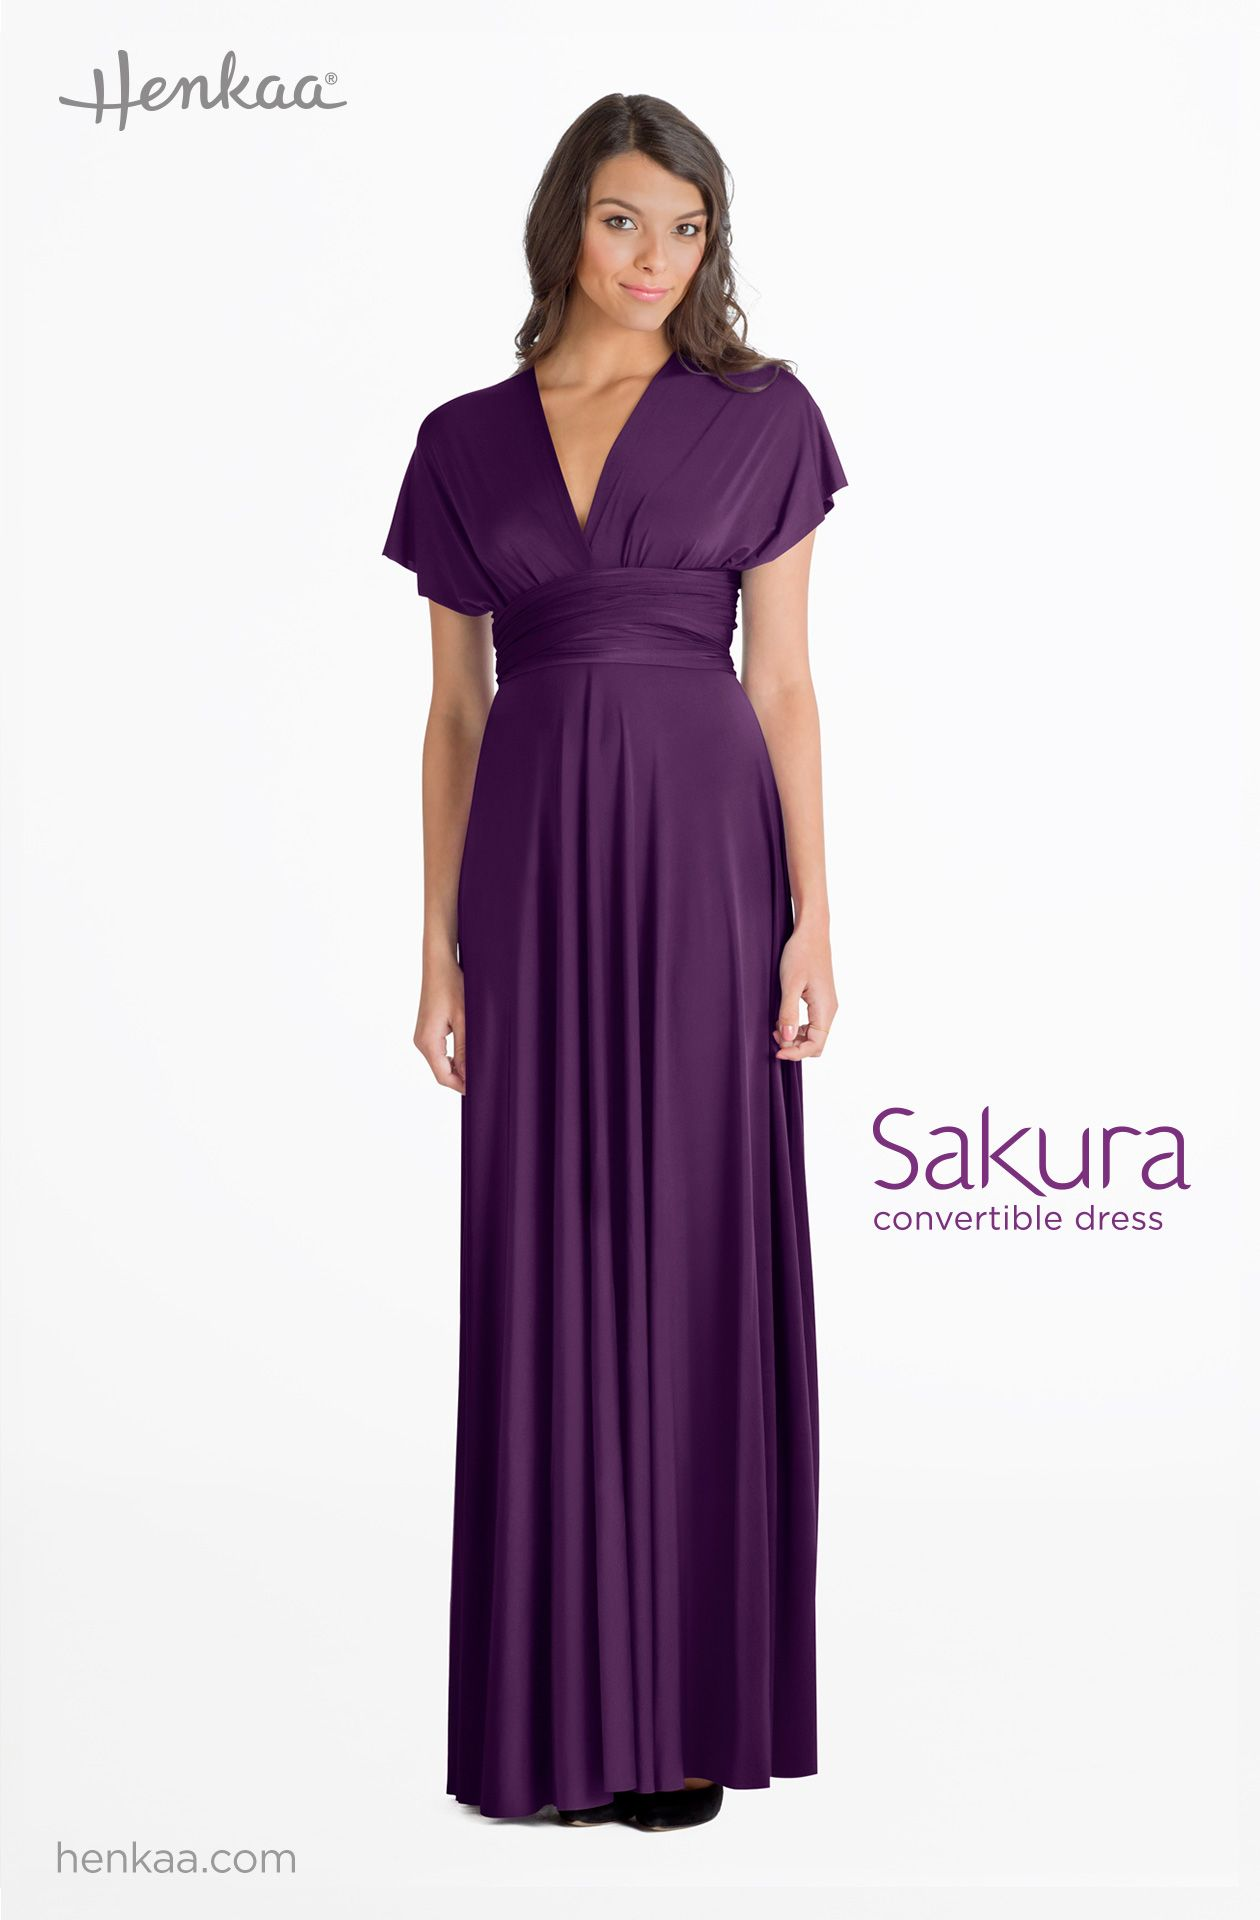 Learn to Style the Sakura Convertible Dress in the Victoria Style ...